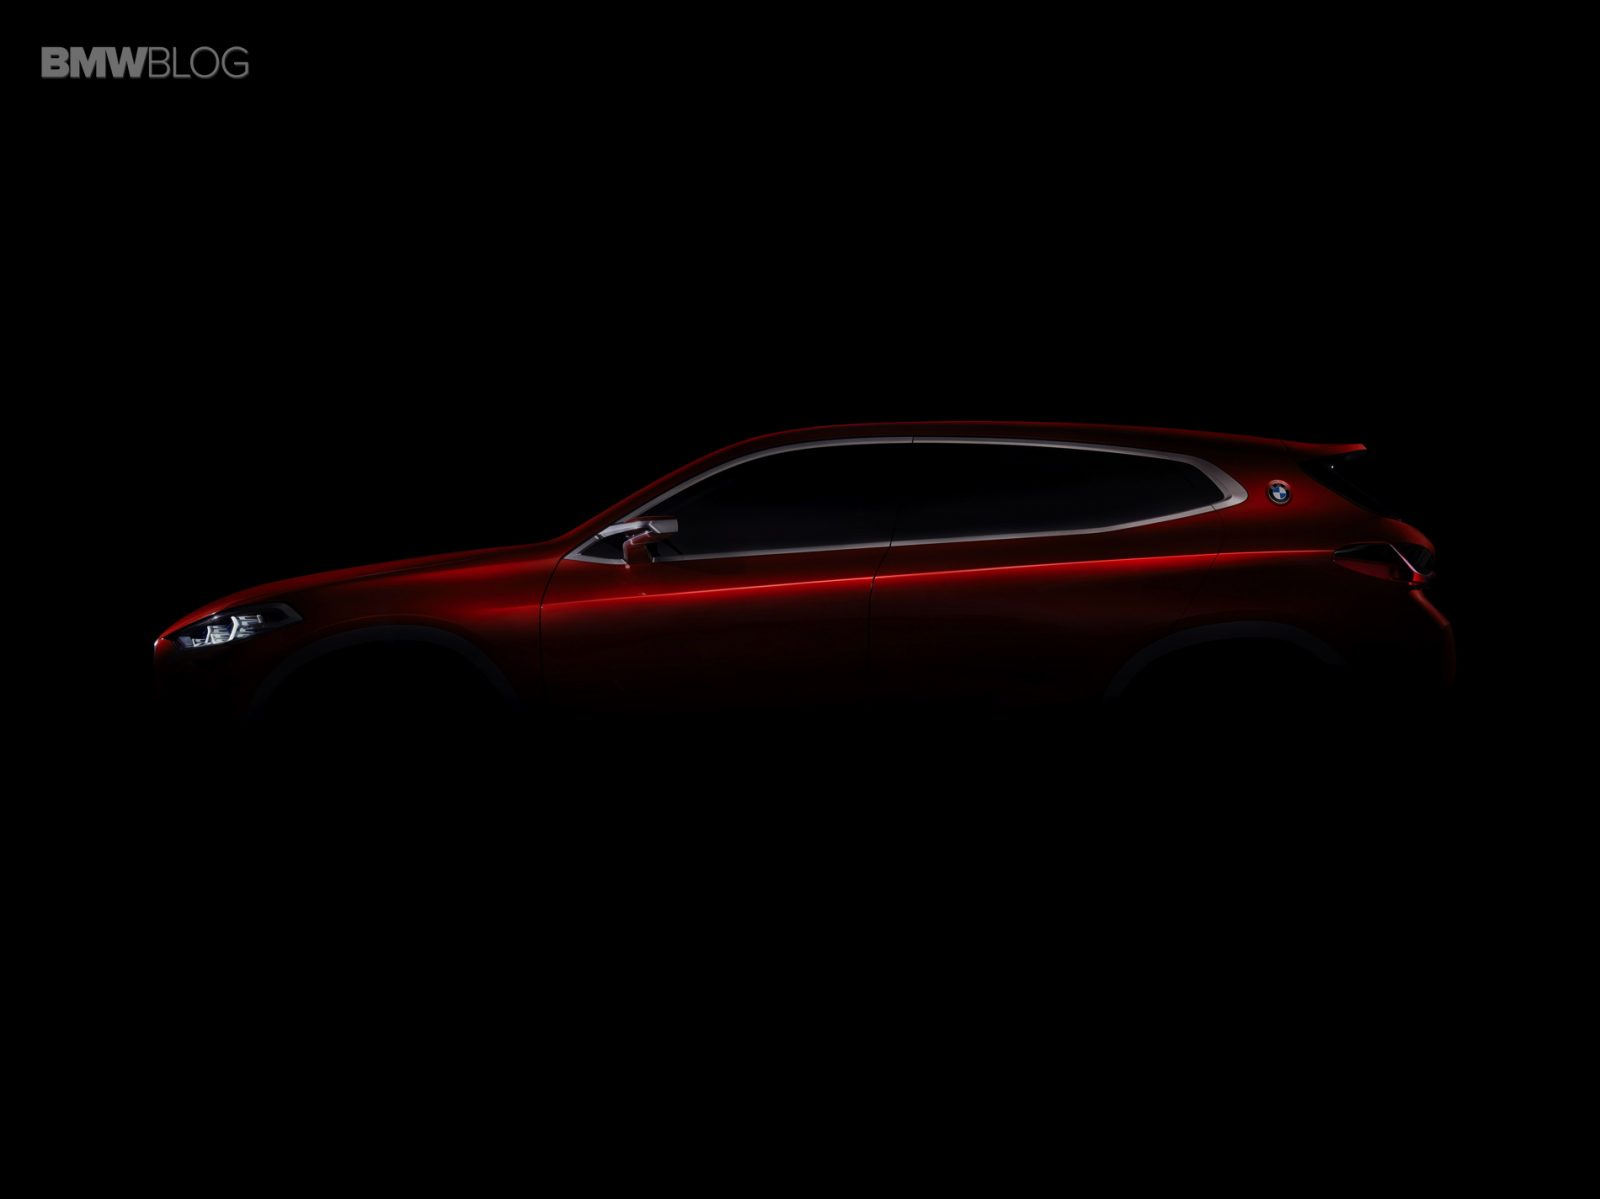 bmw-concept-x2-side-silhouette